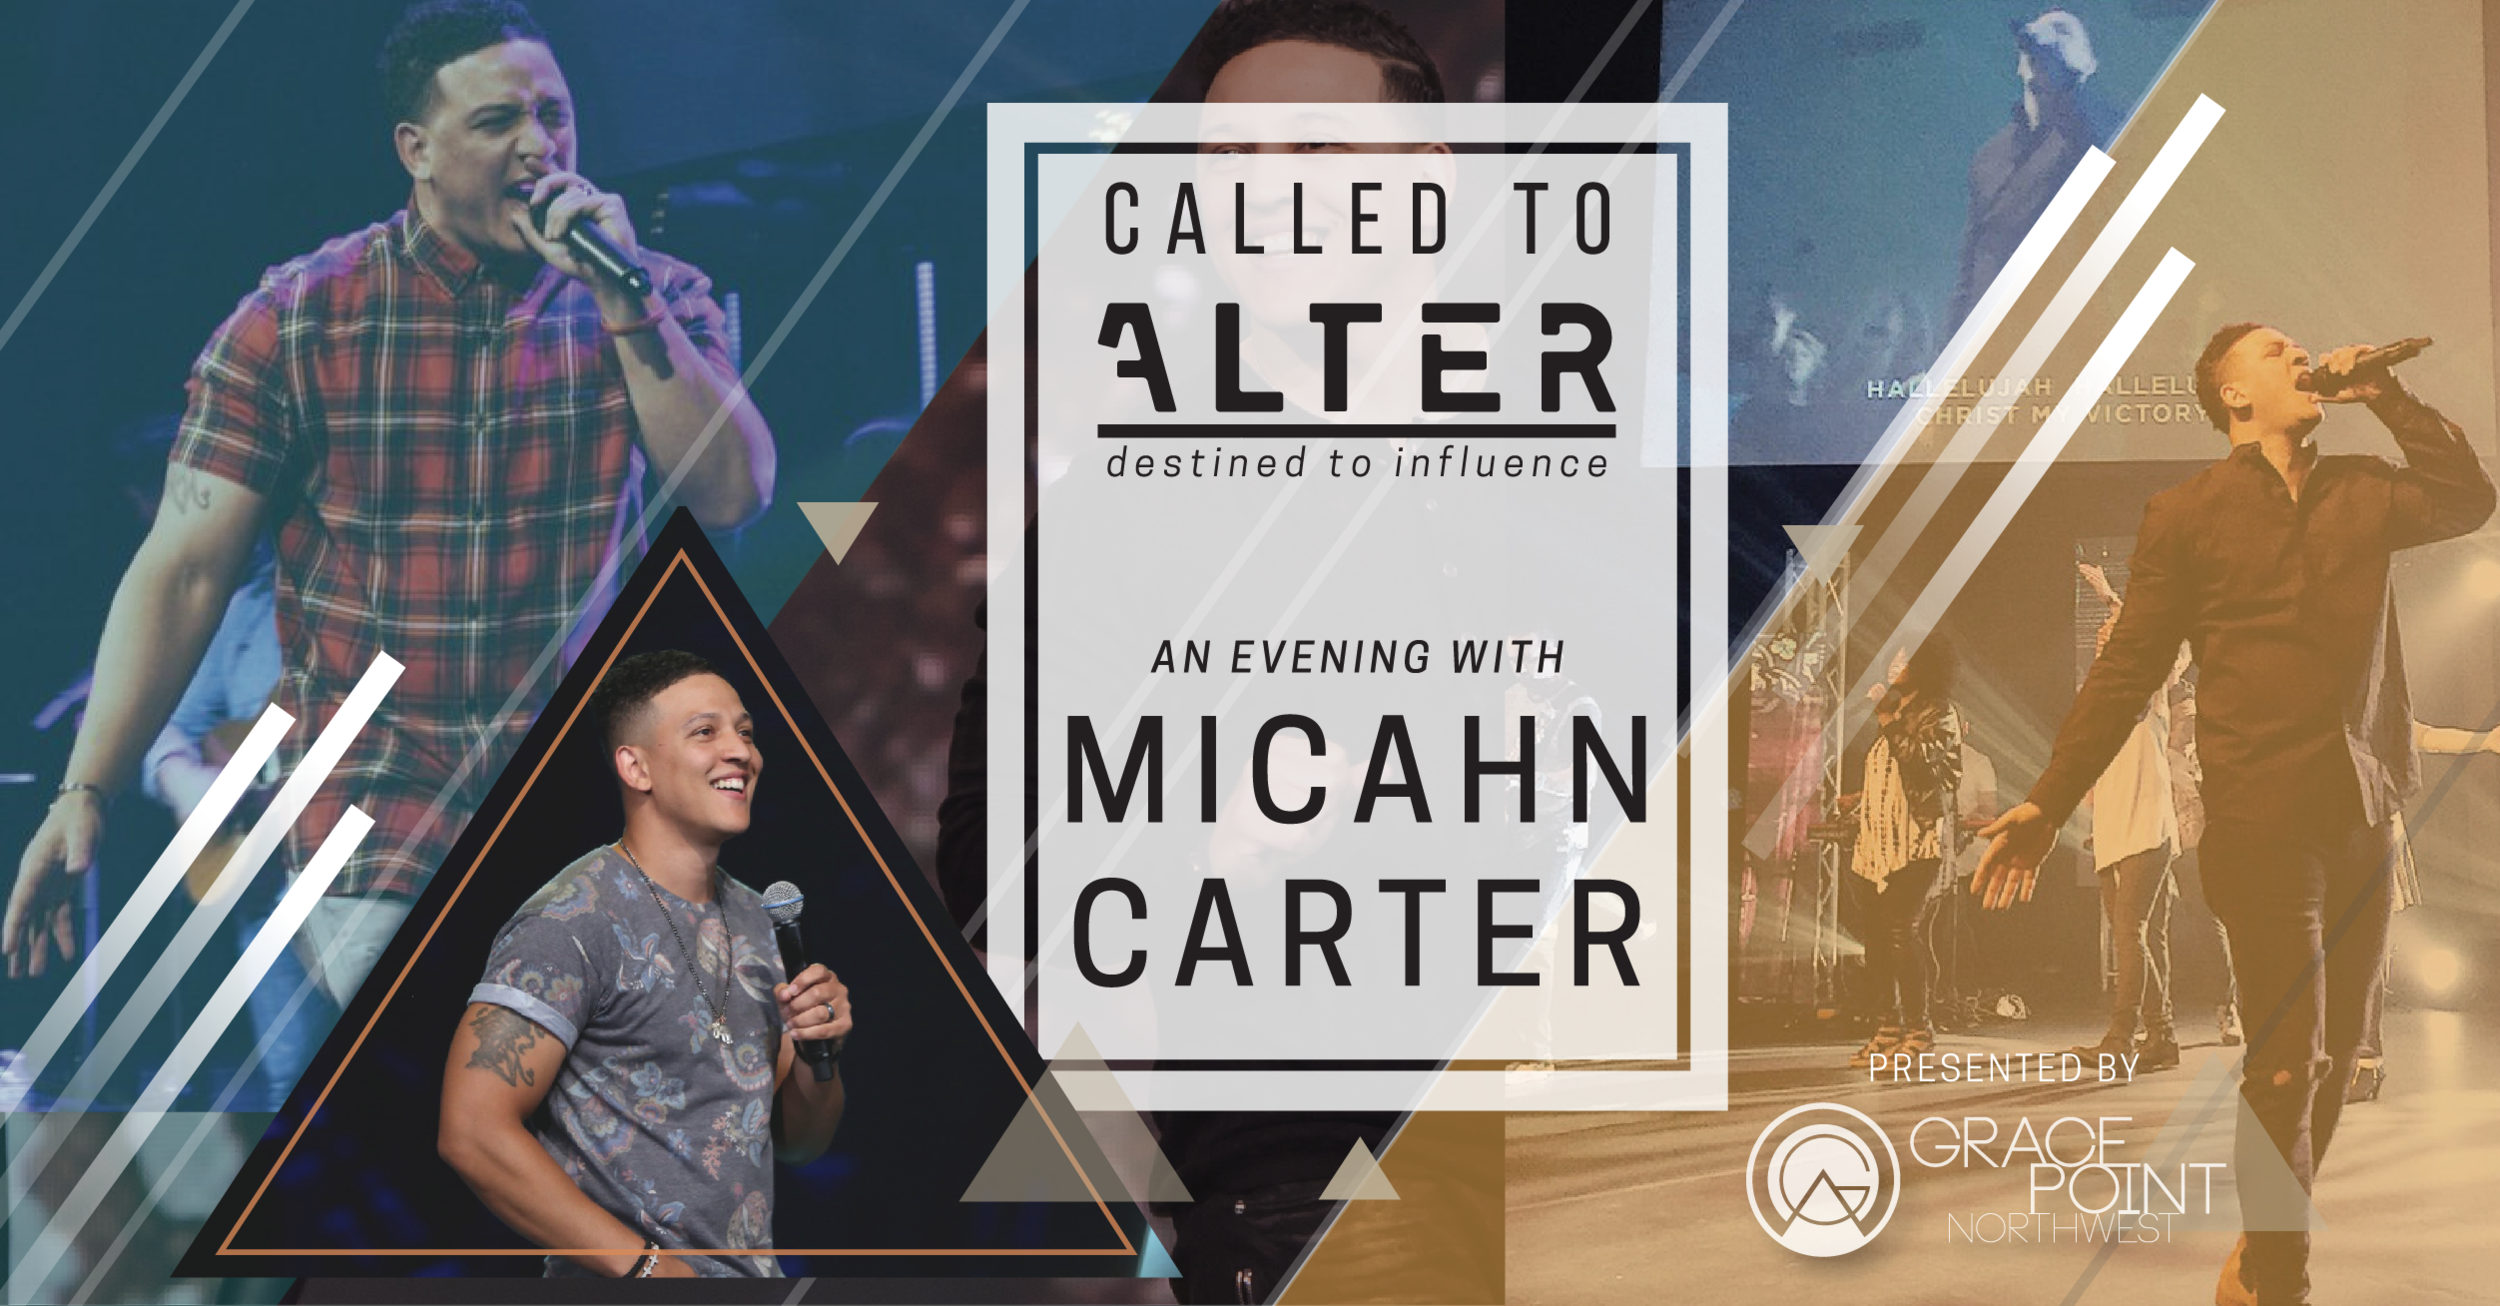 called to alter with Micahn Carter